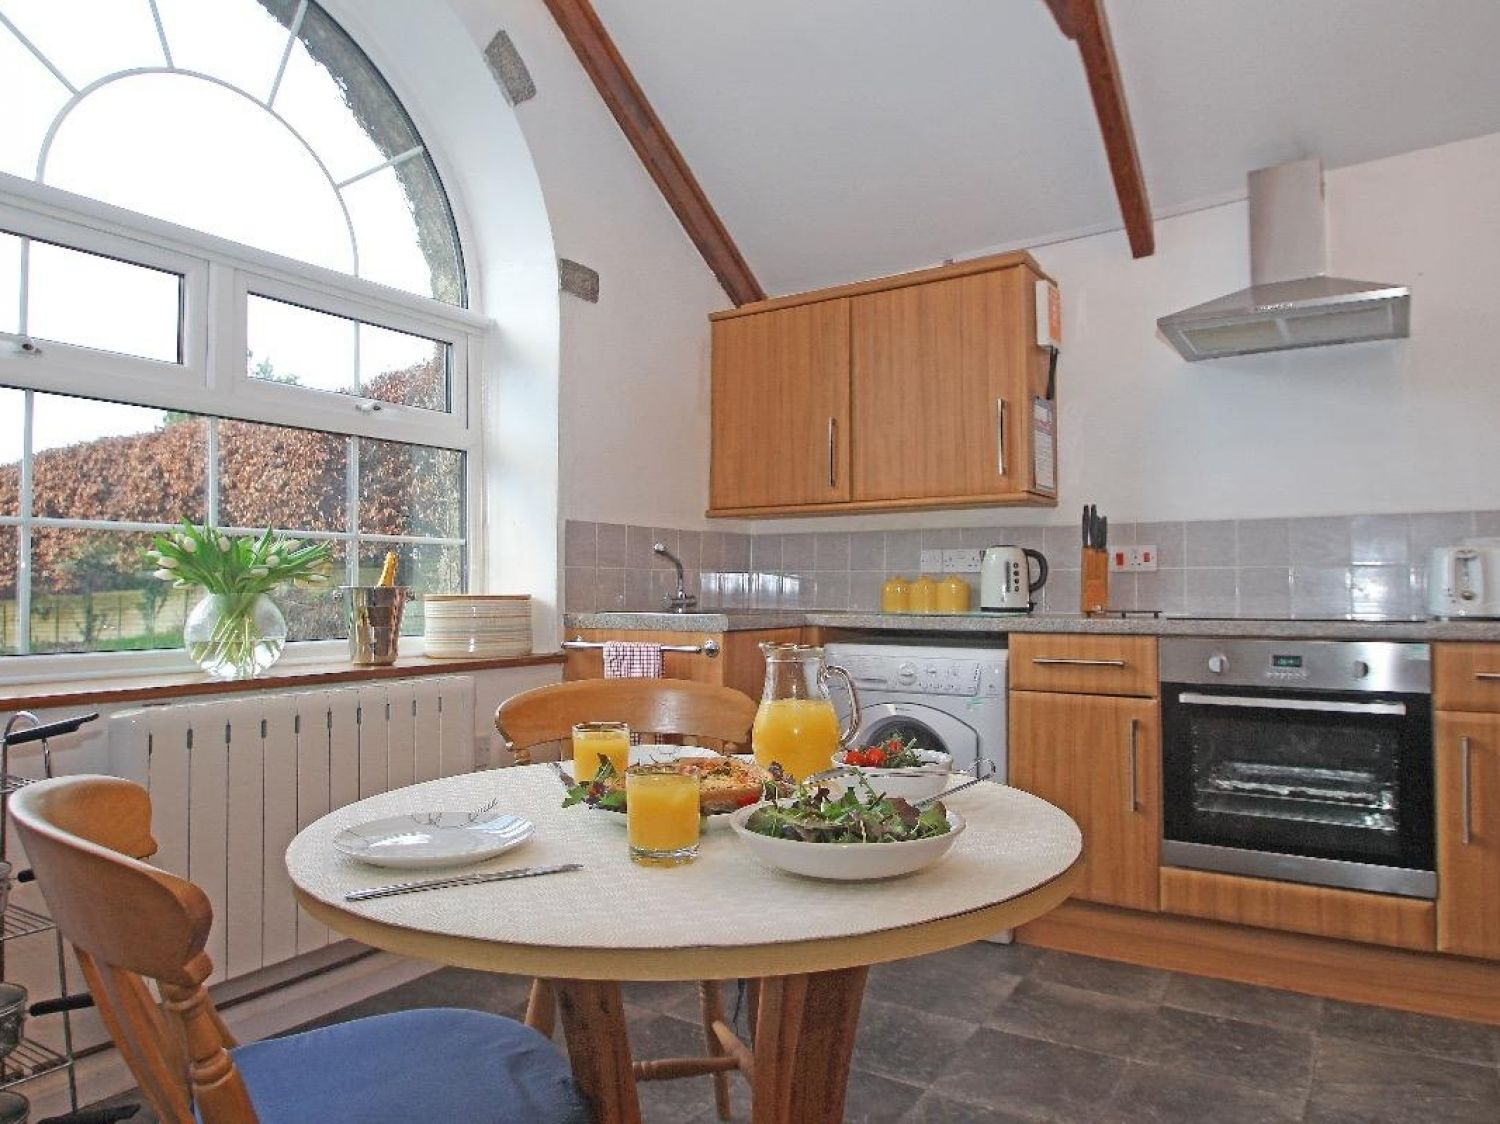 Trevenning Chapel in Port Isaac - sleeps 2 people